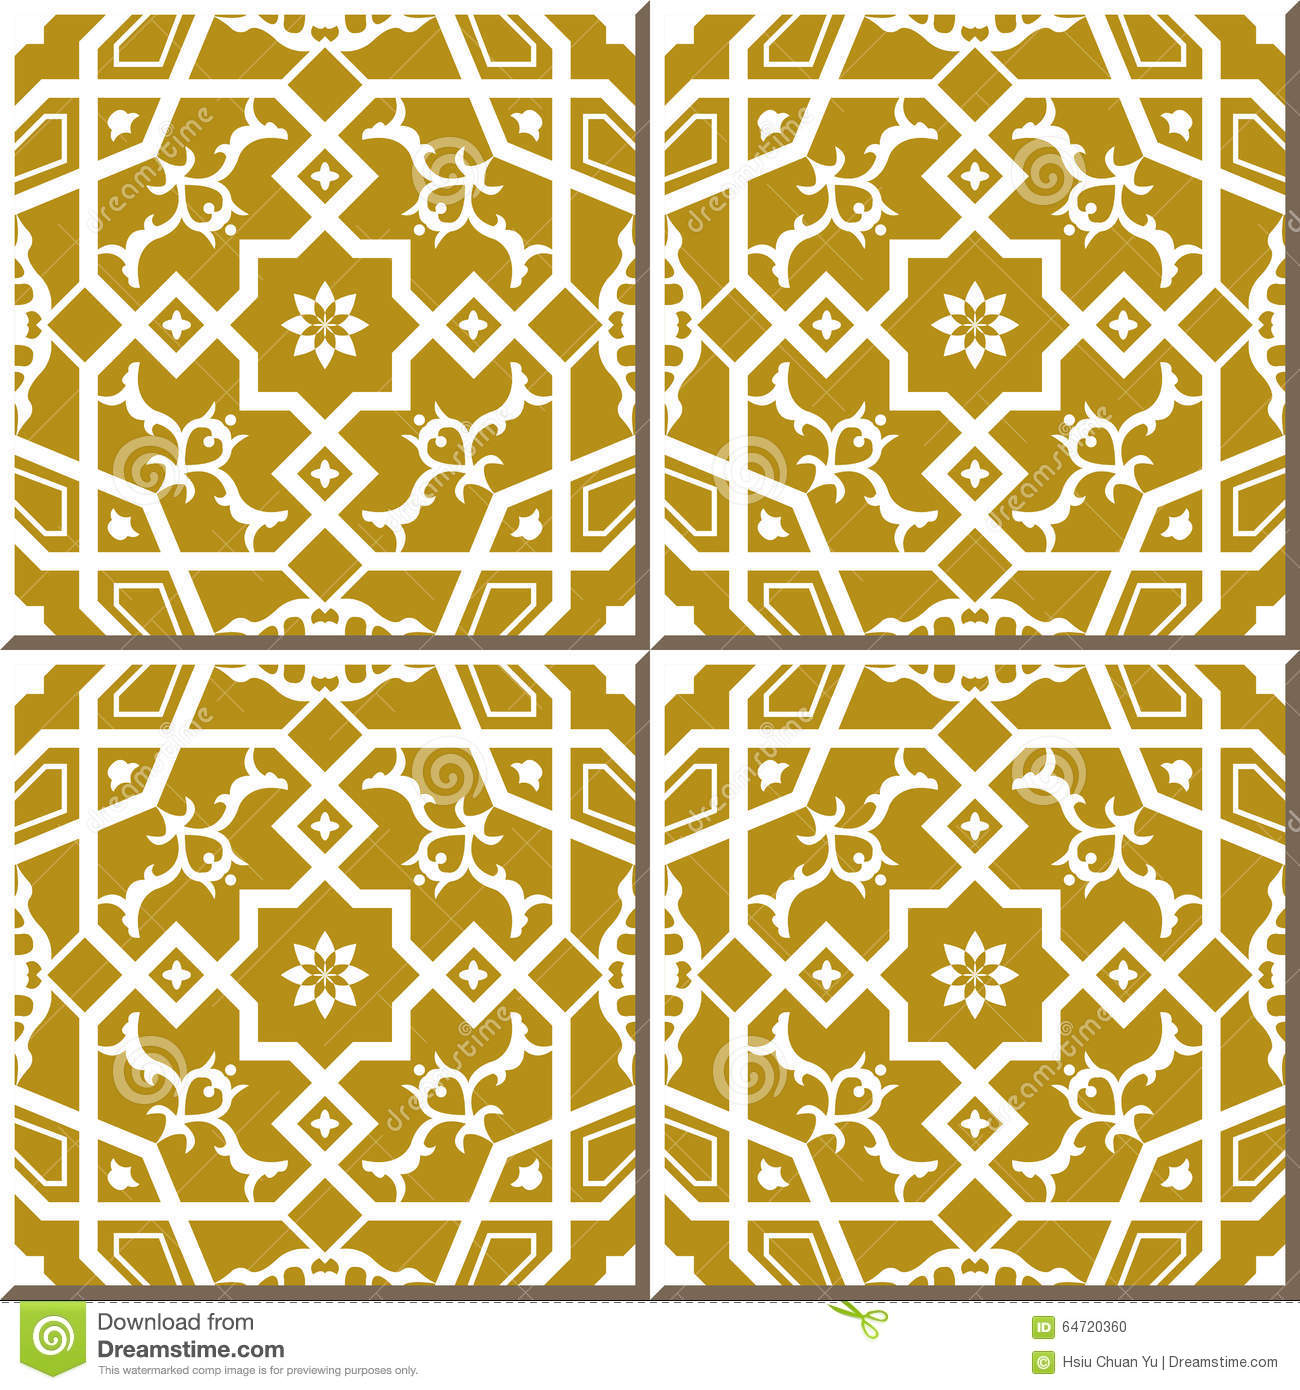 Vintage Seamless Wall Tiles Of Cross Polygon Star Lace, Moroccan ...